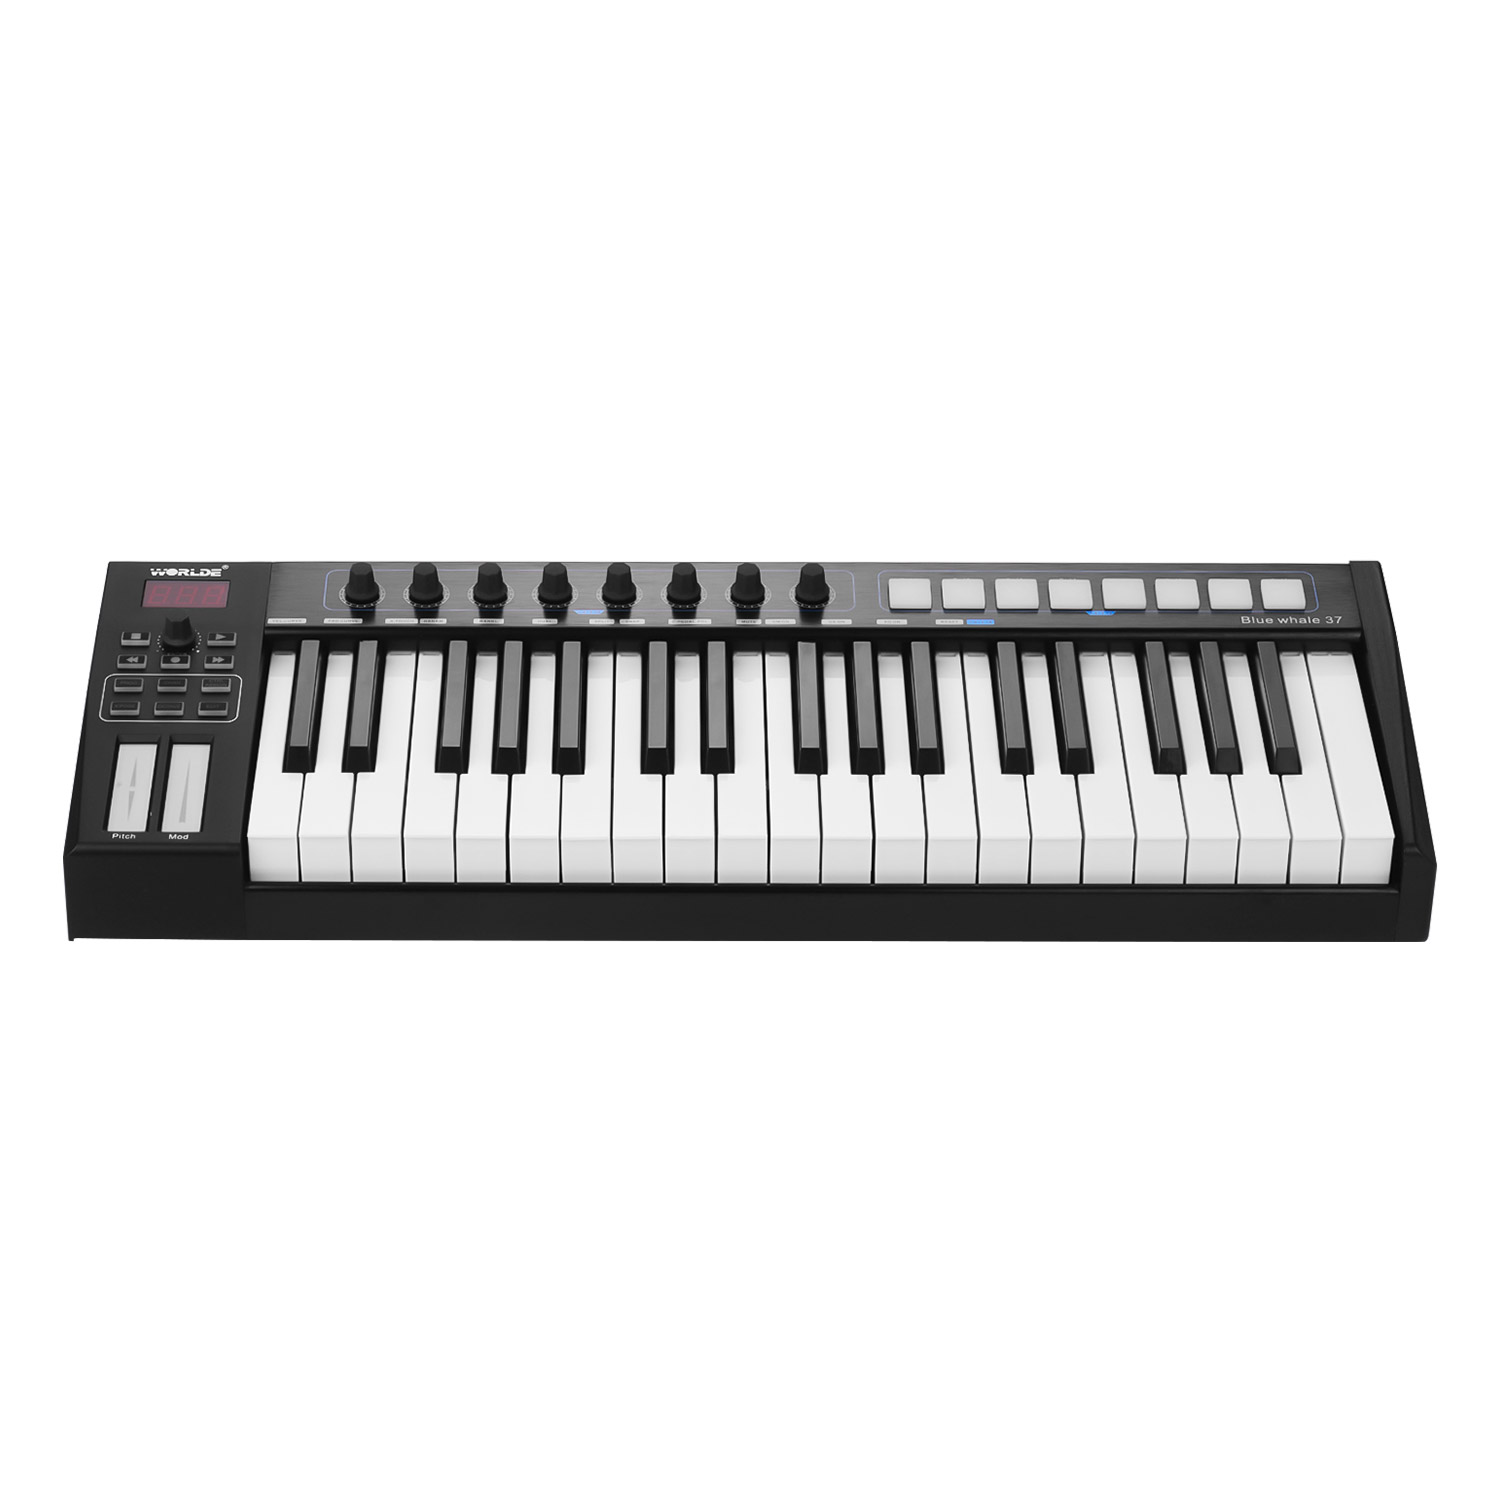 37/25 Keys USB MIDI Controller Keyboard 37 Semi-weighted Keys 8 RGB Backlit Trigger Pads LED Display with USB Cable